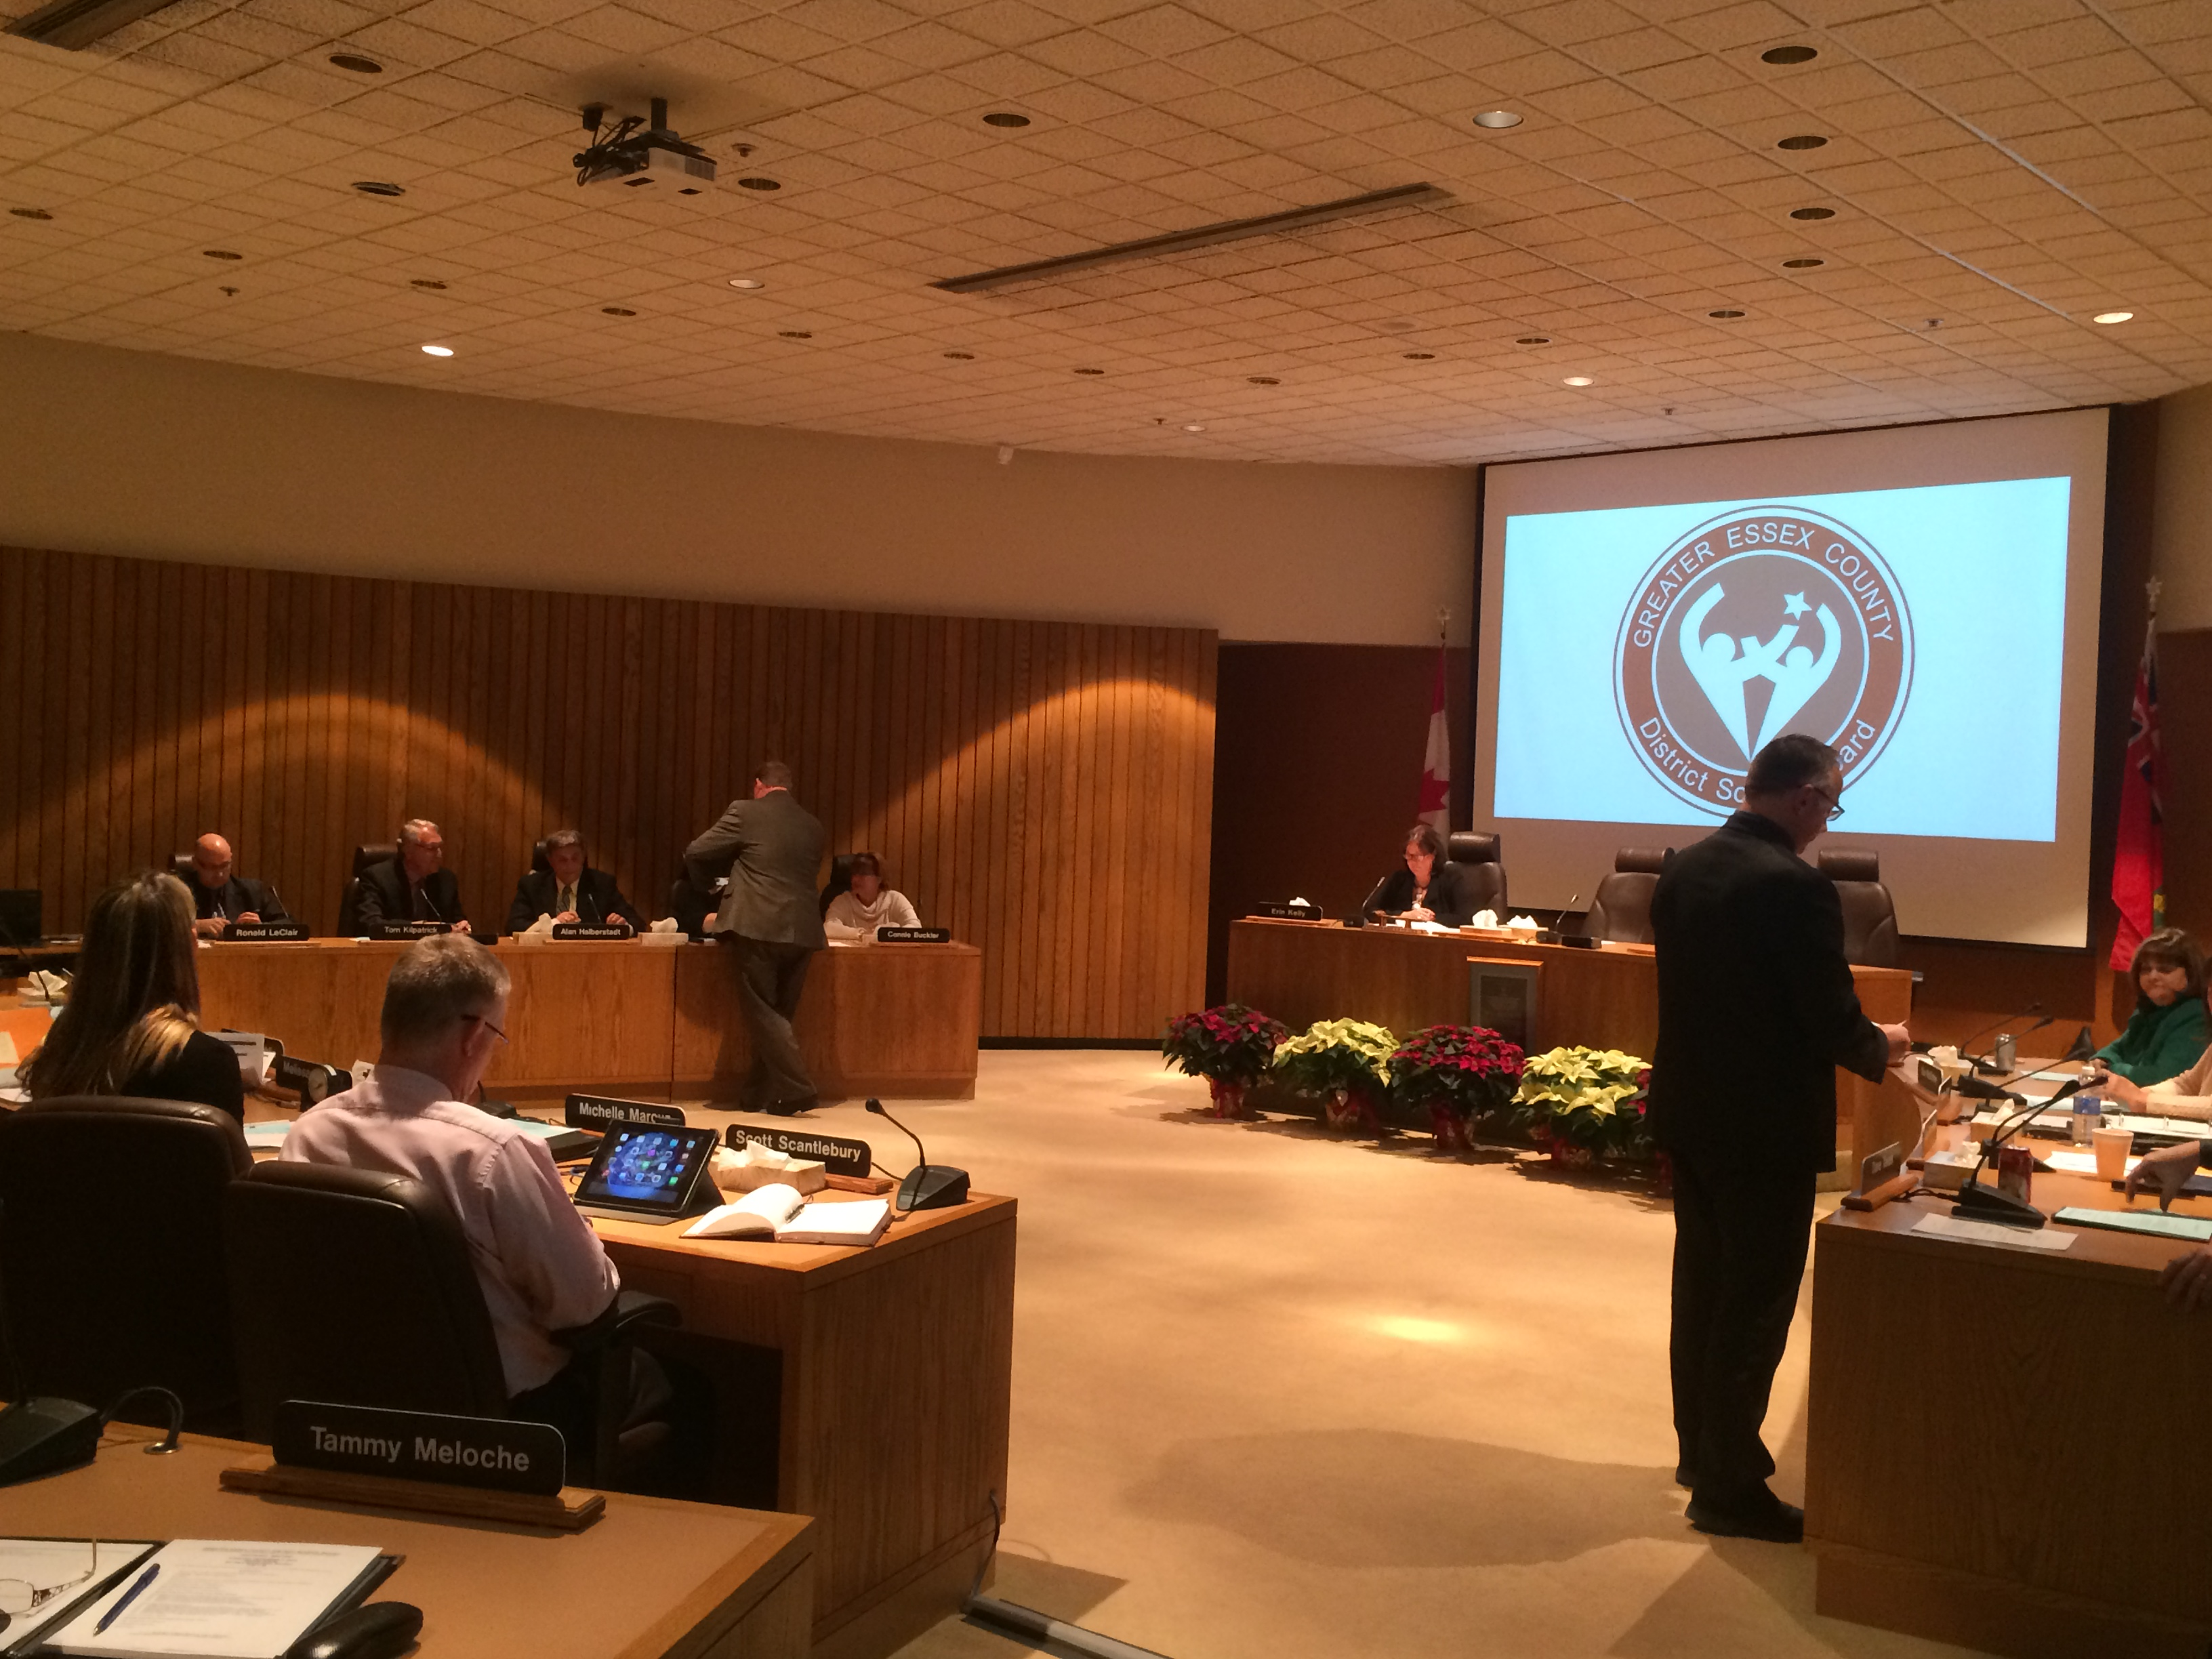 Ballots are handed out at the GECDSB organization meeting on December 2, 2014 as trustees vote for a new chairperson and vice-chairperson. (Photo by Ricardo Veneza)